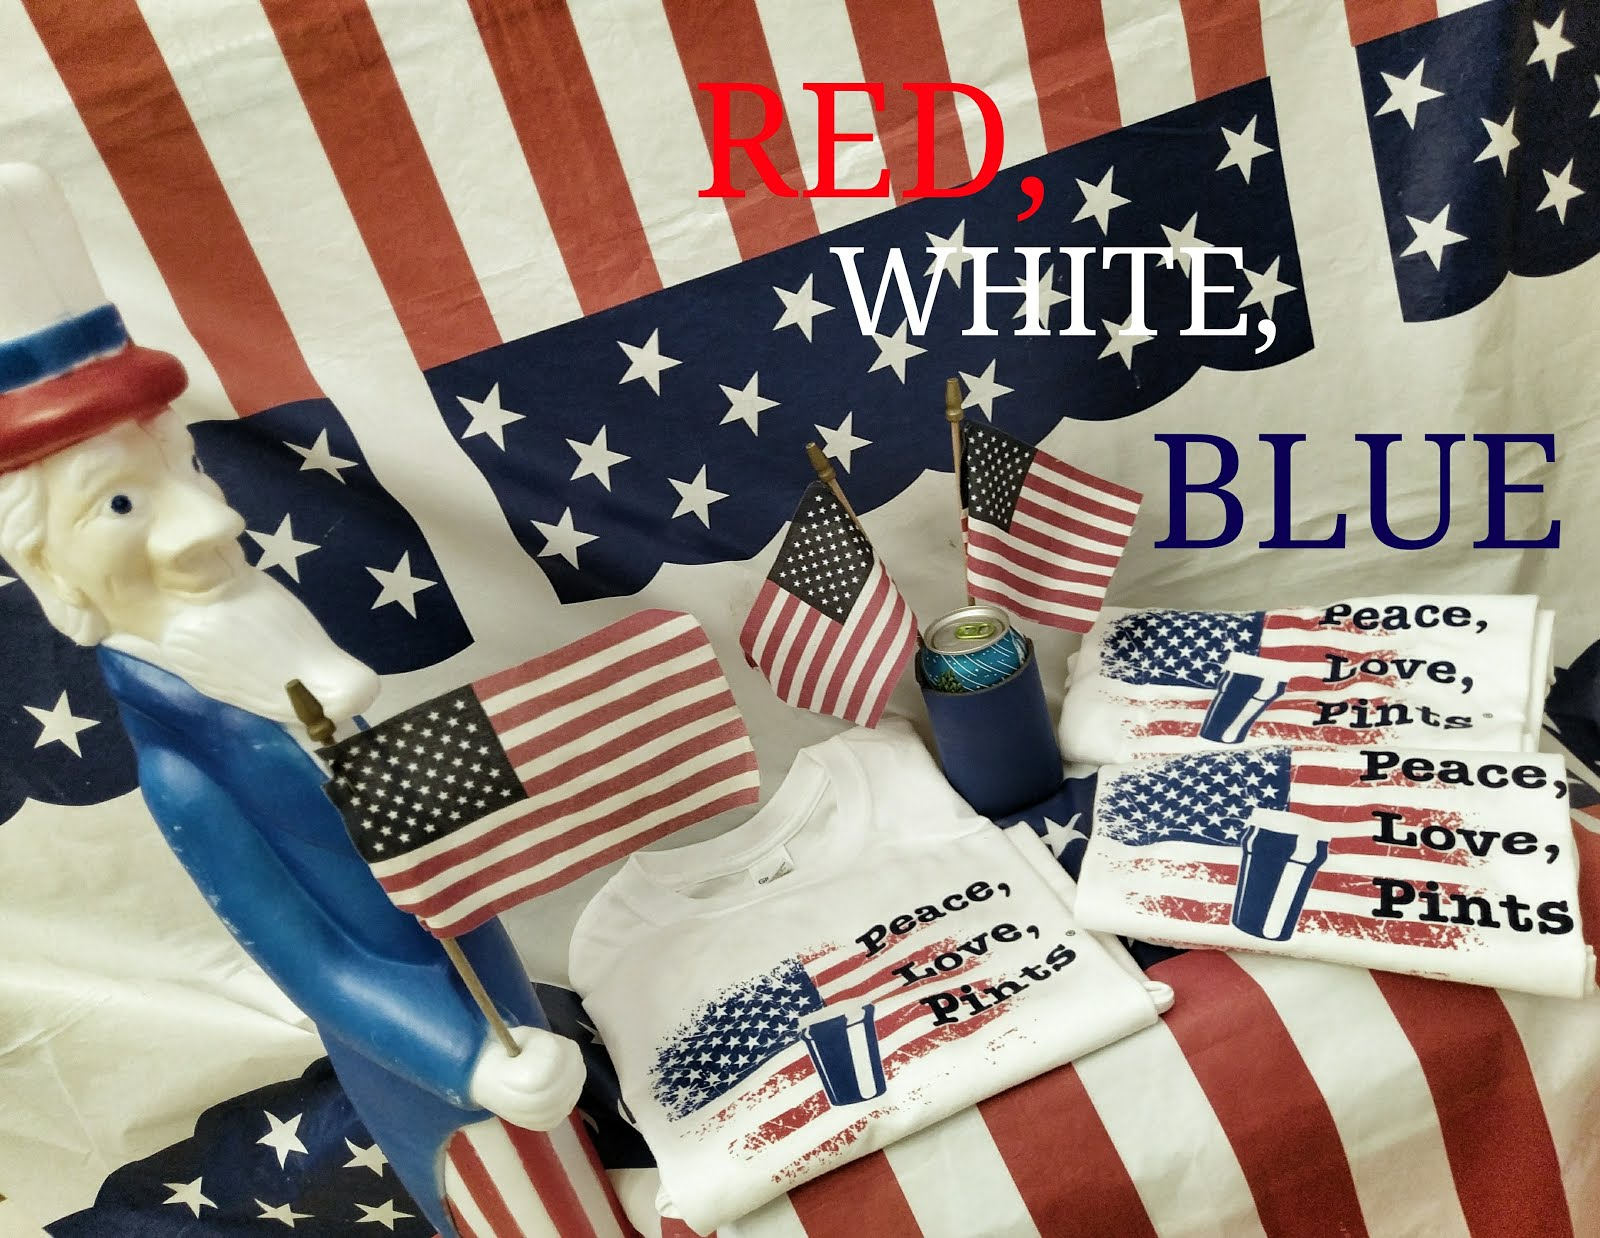 RED, WHITE & BLUE for Summer!